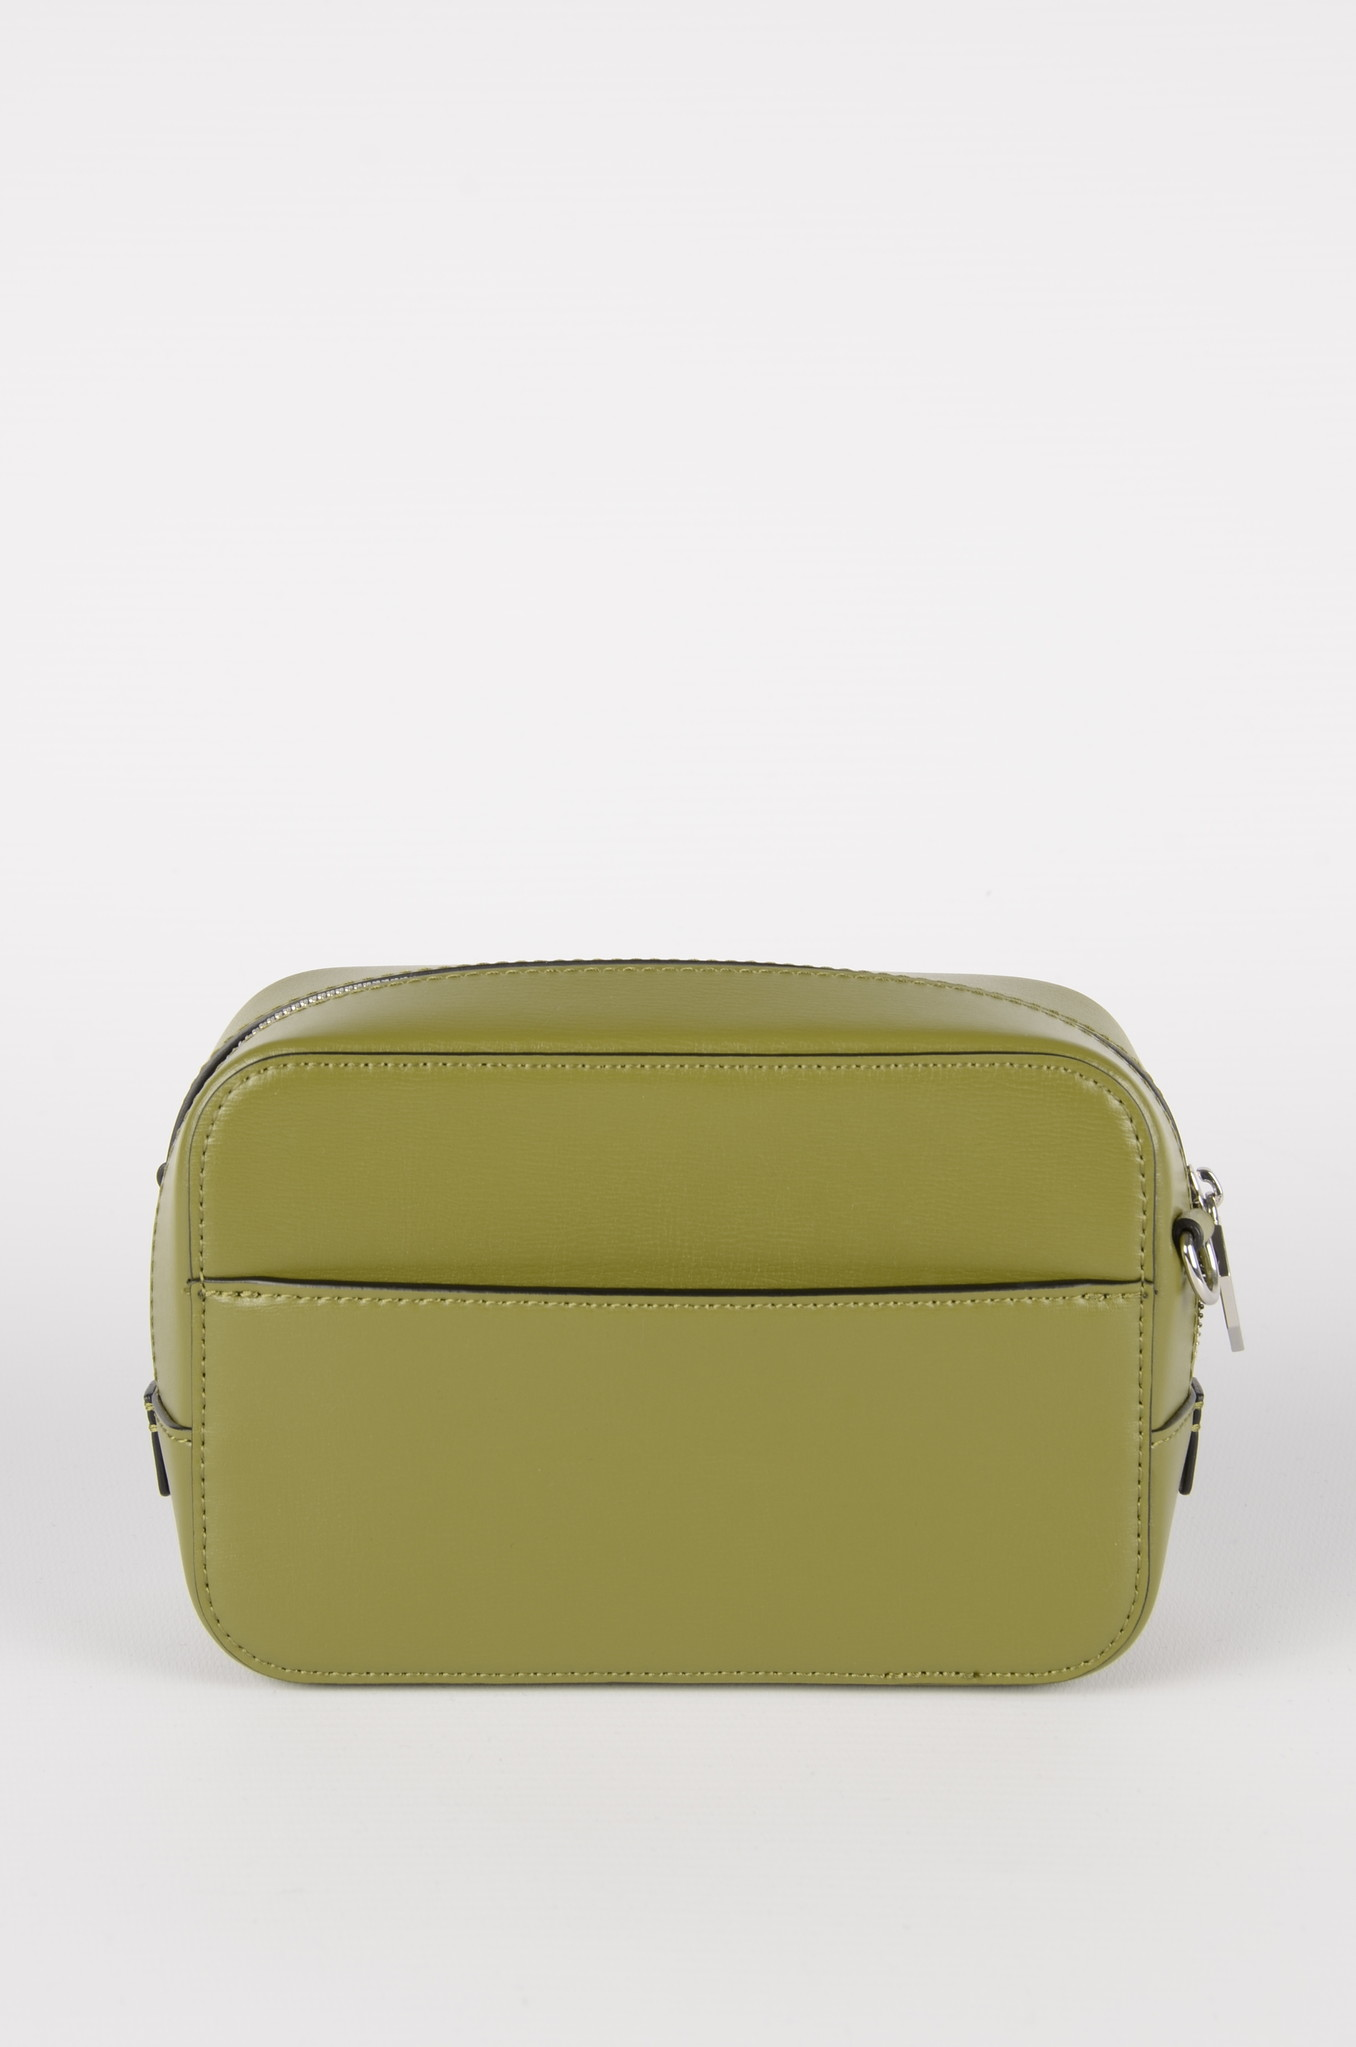 LEATHER BAG IN AVOCADO-3